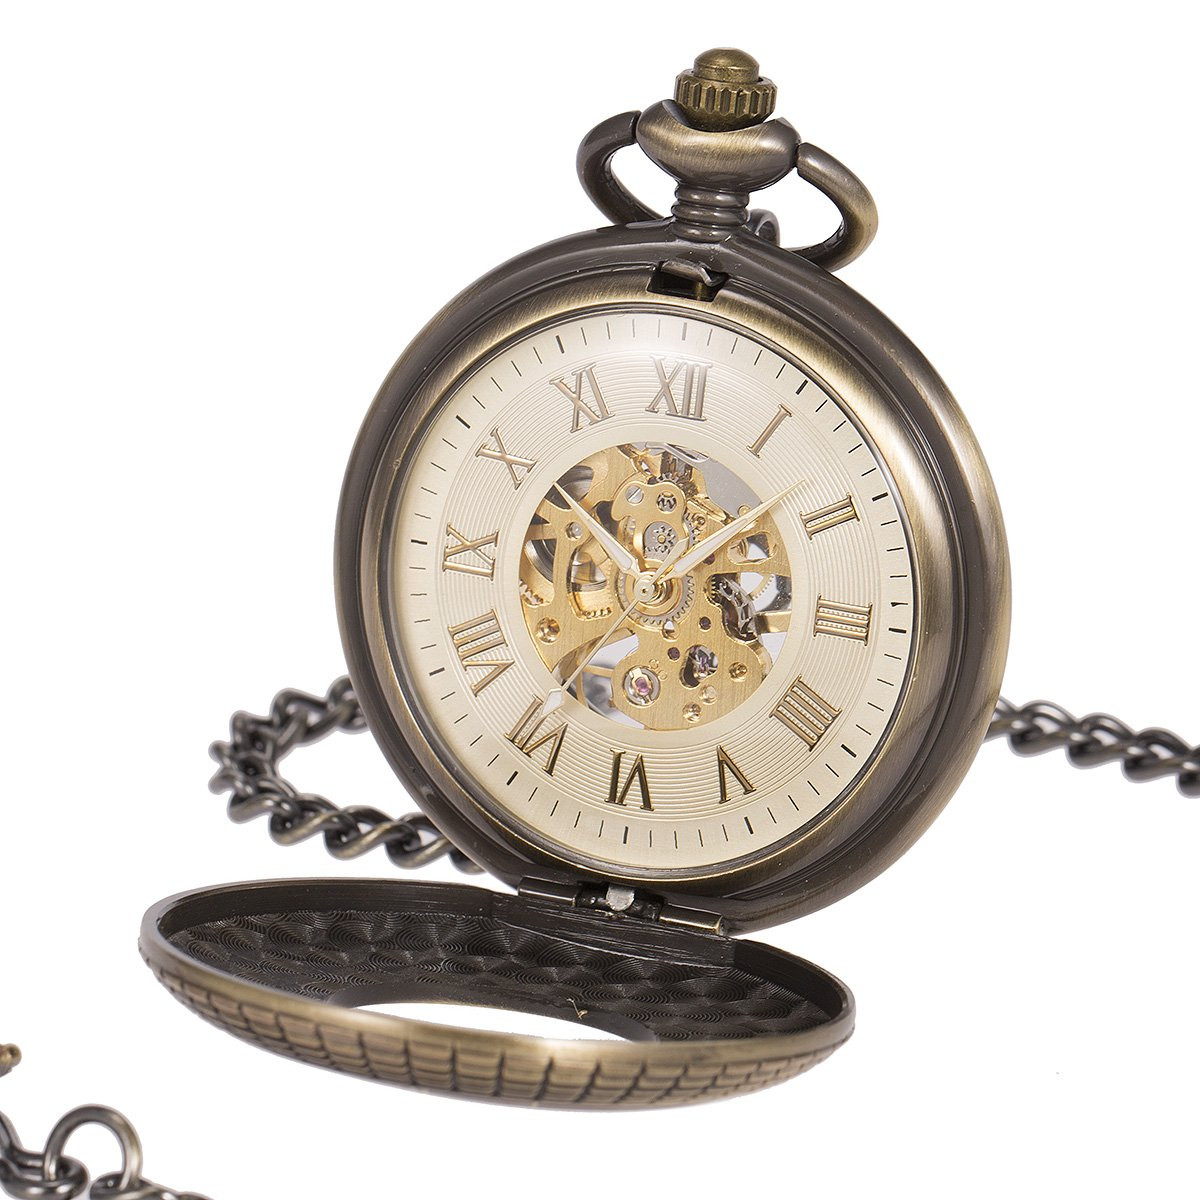 ManChDa Mens imitative wood Luminous Skeleton Mechanical Roman Numerals Pocket Watch With Chain Gift by ManChDa (Image #1)